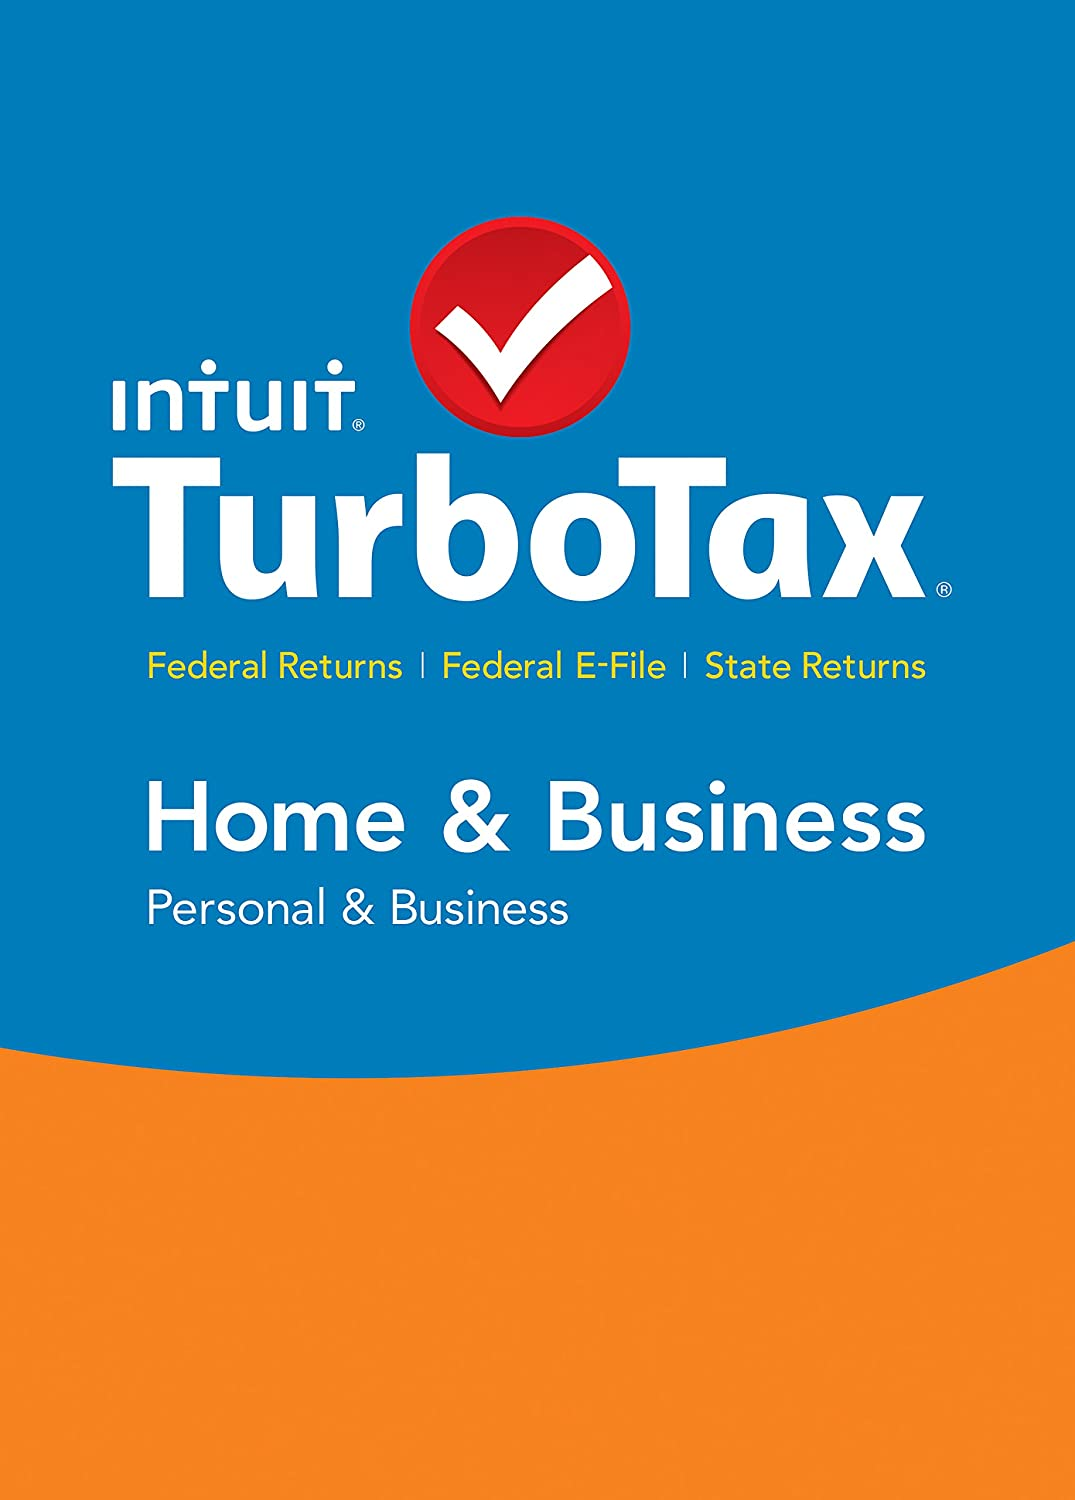 TurboTax Home & Business 2015 Federal + State Taxes + Fed Efile Tax Preparation Software - PC Download